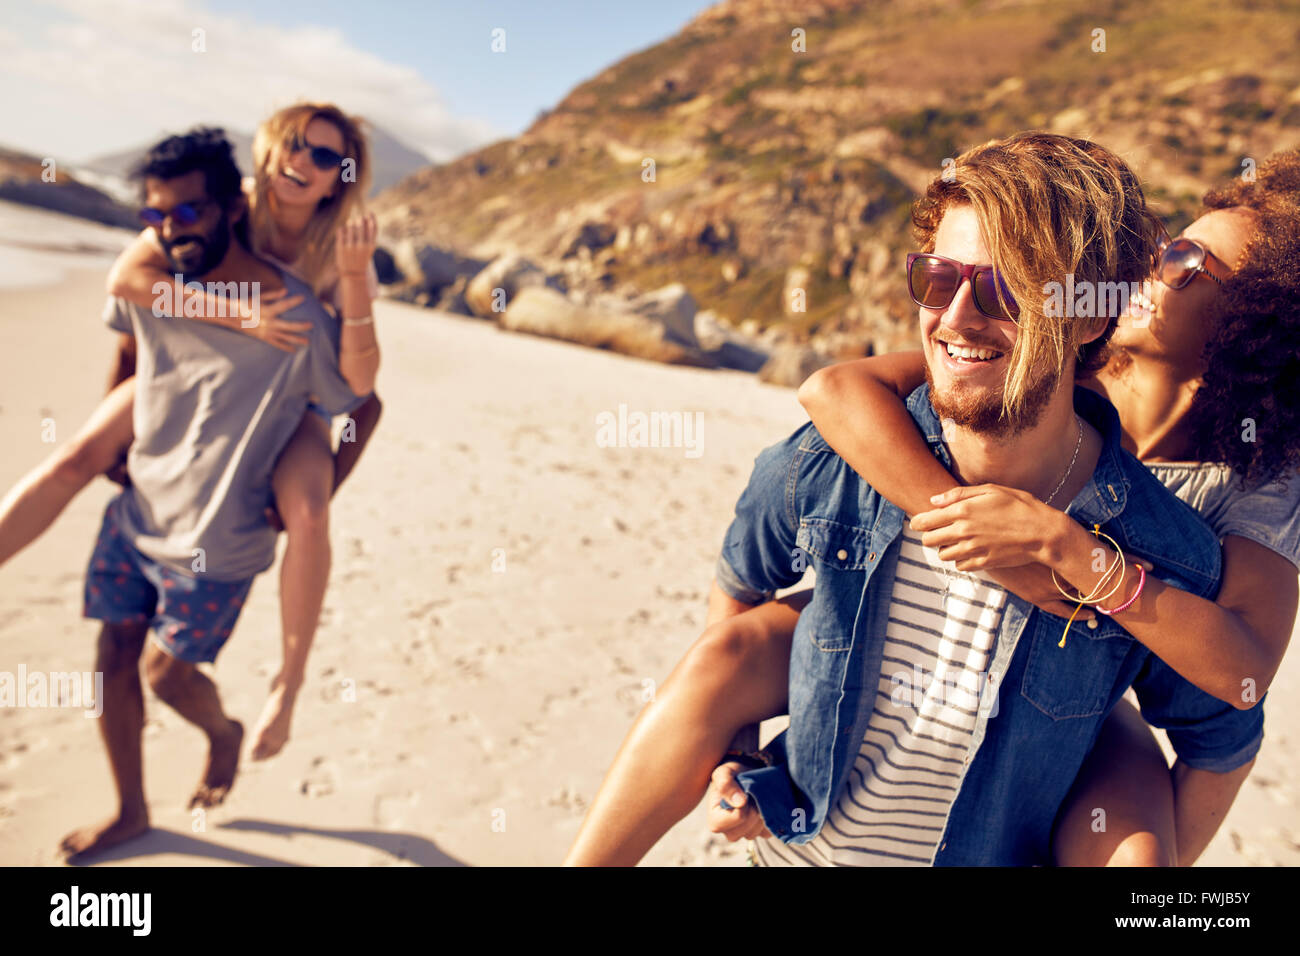 Young men piggybacking women on the sea shore. Mixed race young people enjoying summer vacation at beach. - Stock Image